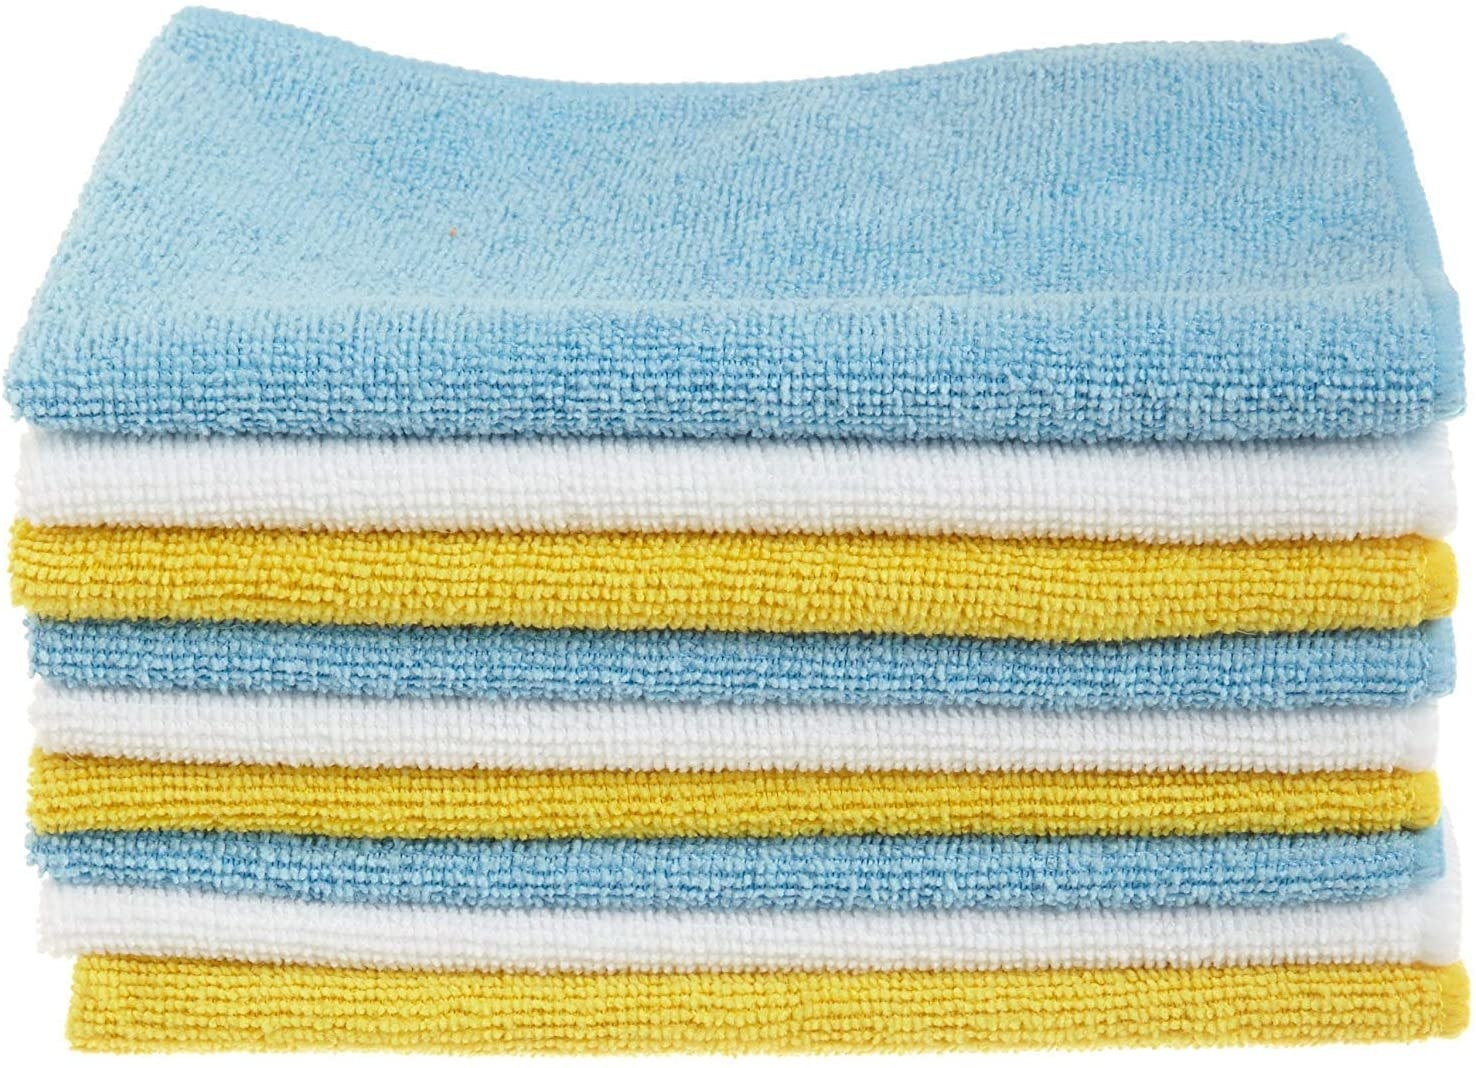 A stack of the yellow, blue, and white cloths